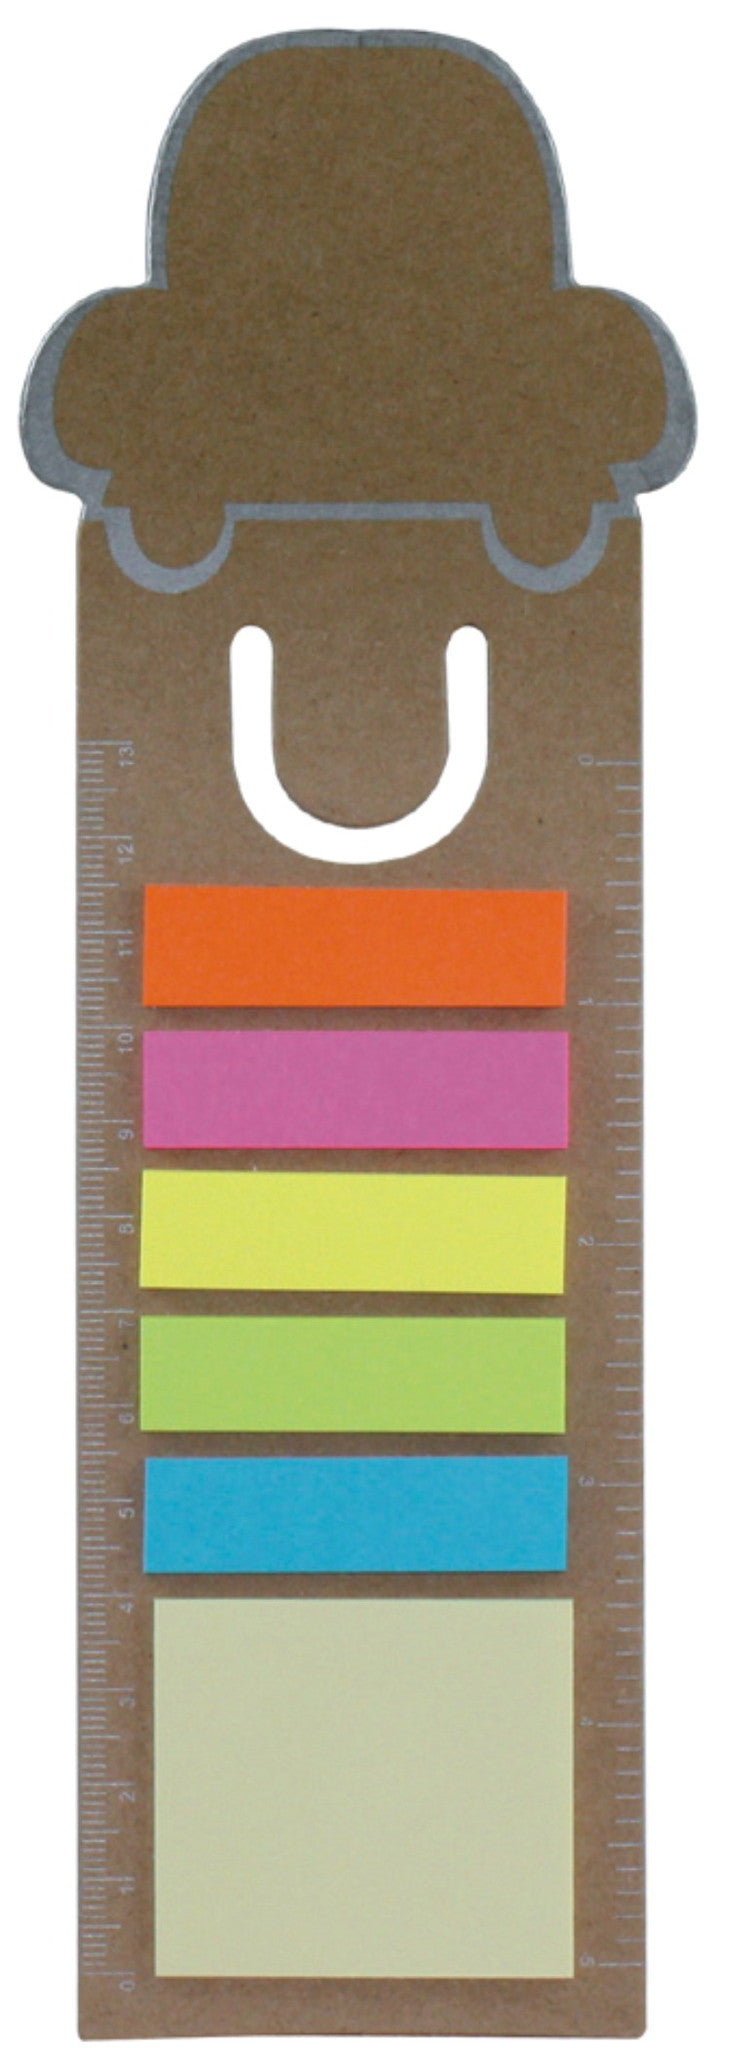 3-in-1 bookmark with sticky notes and ruler 'car', Office - Presence